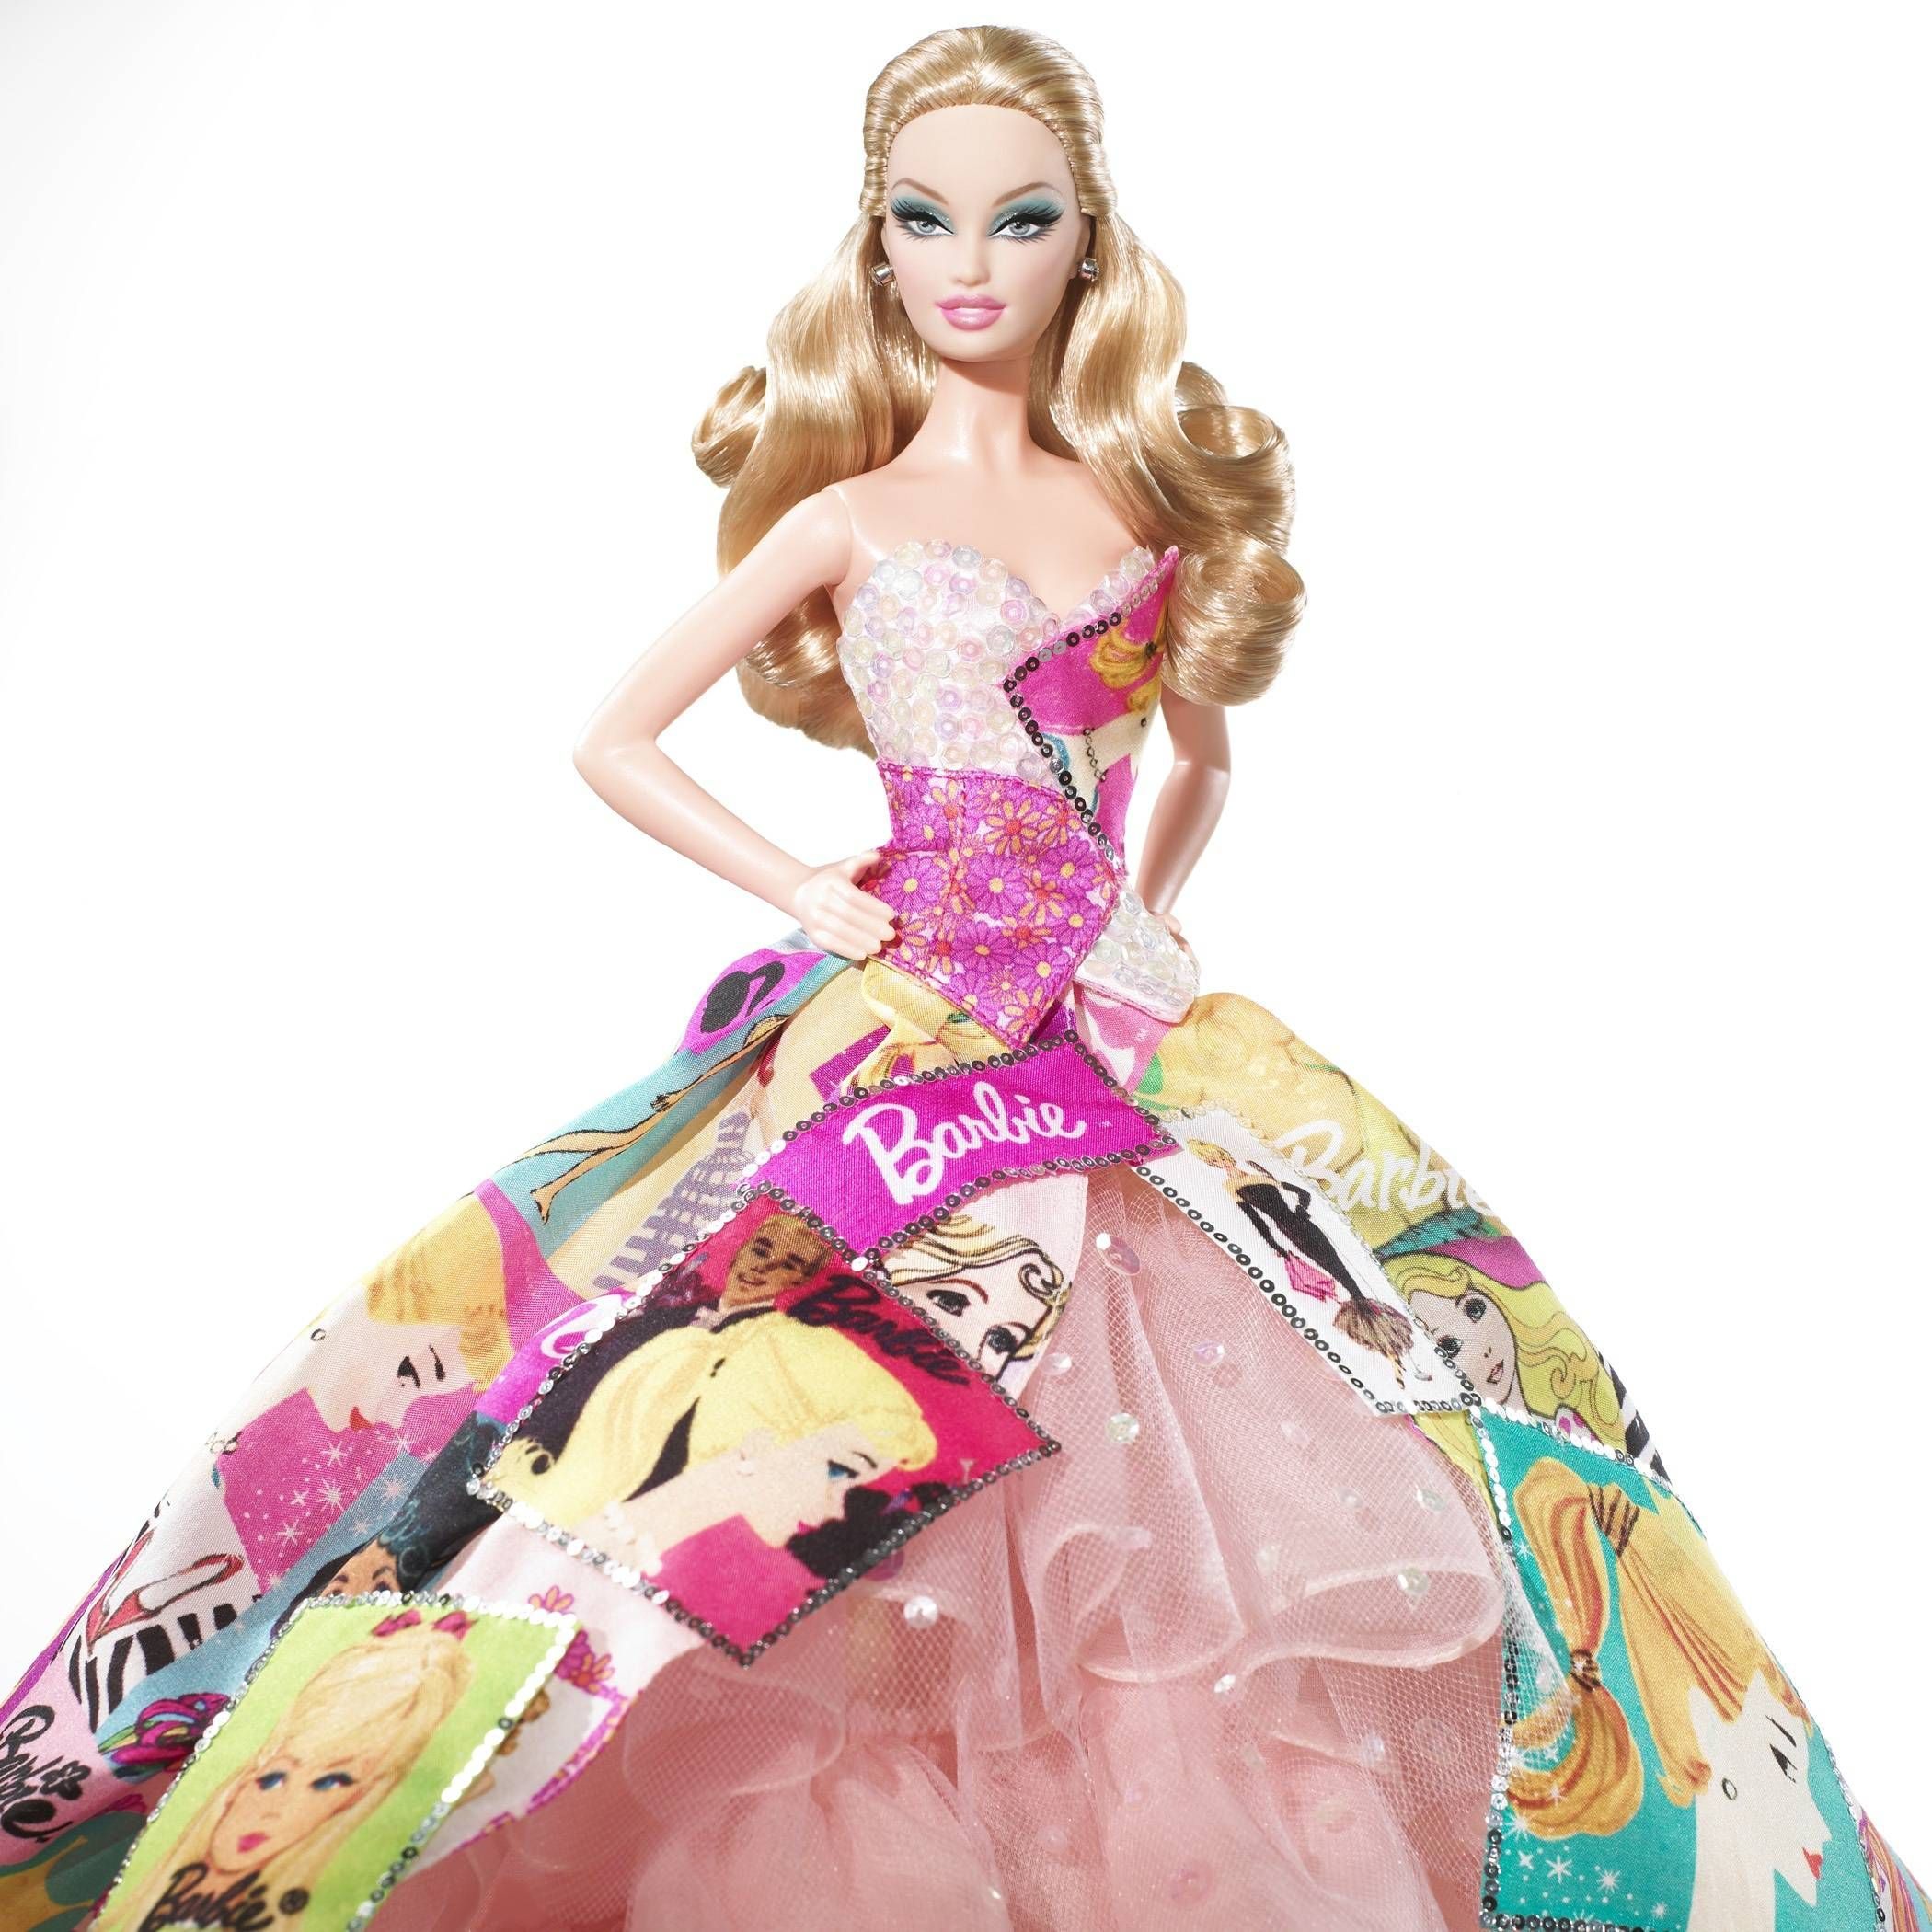 Cute hairstyles for barbie dolls - Barbie Collector Generations Of Dreams Doll Coupon